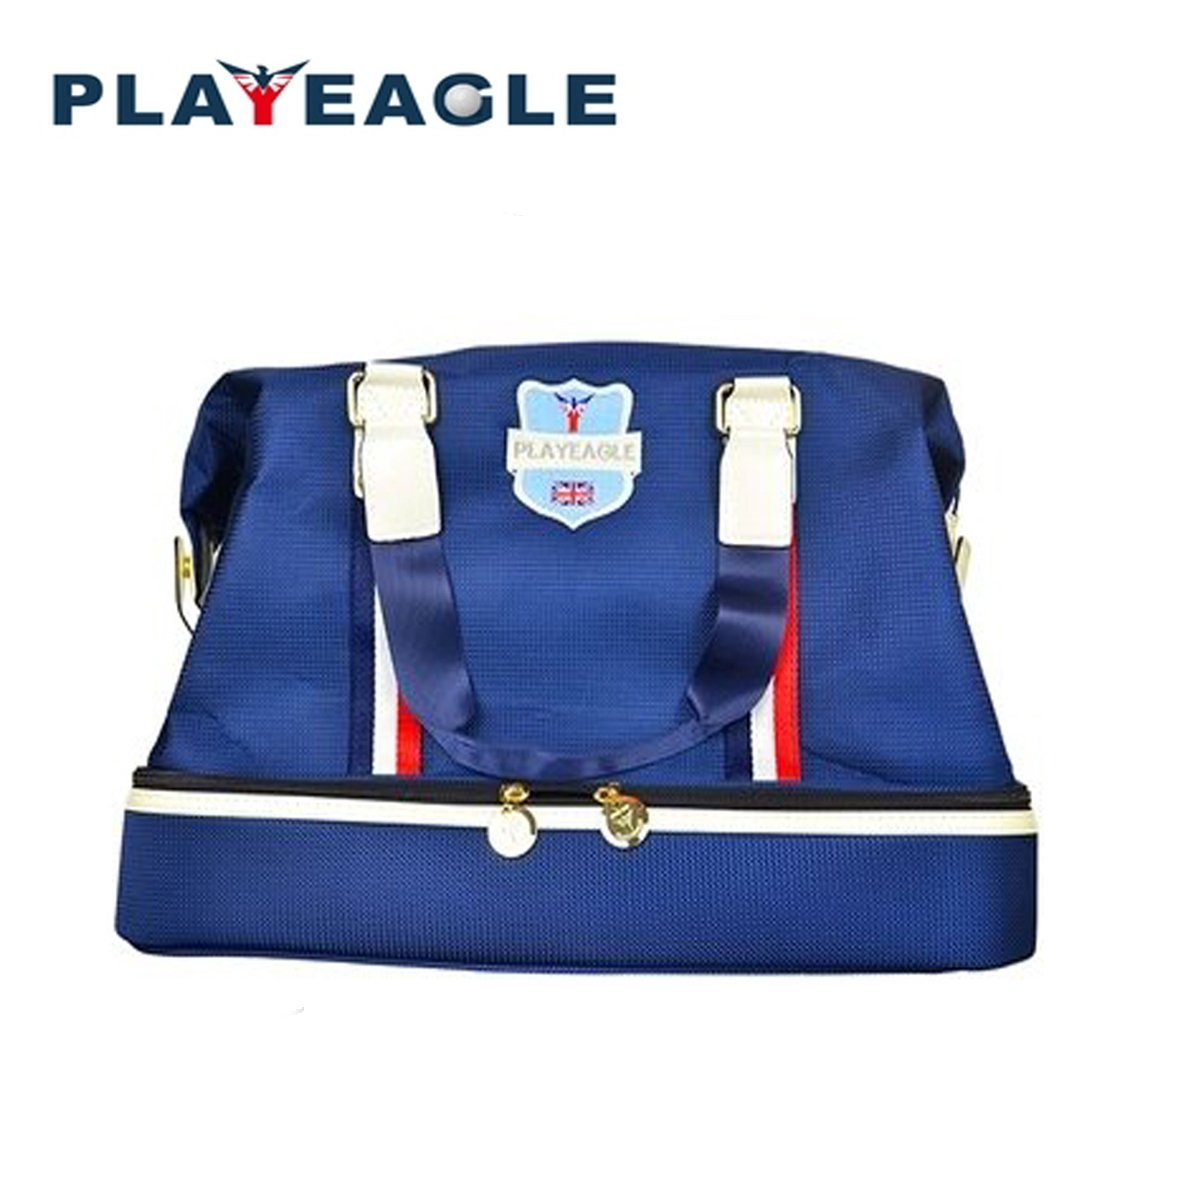 PLAYEAGLE Men's Golf Clothing Bag Waterproof Nylon Golf Boston Bag Long Strap/Hand-holding Travel Bags for Women with Shoe Pocket for Outdoor Sports